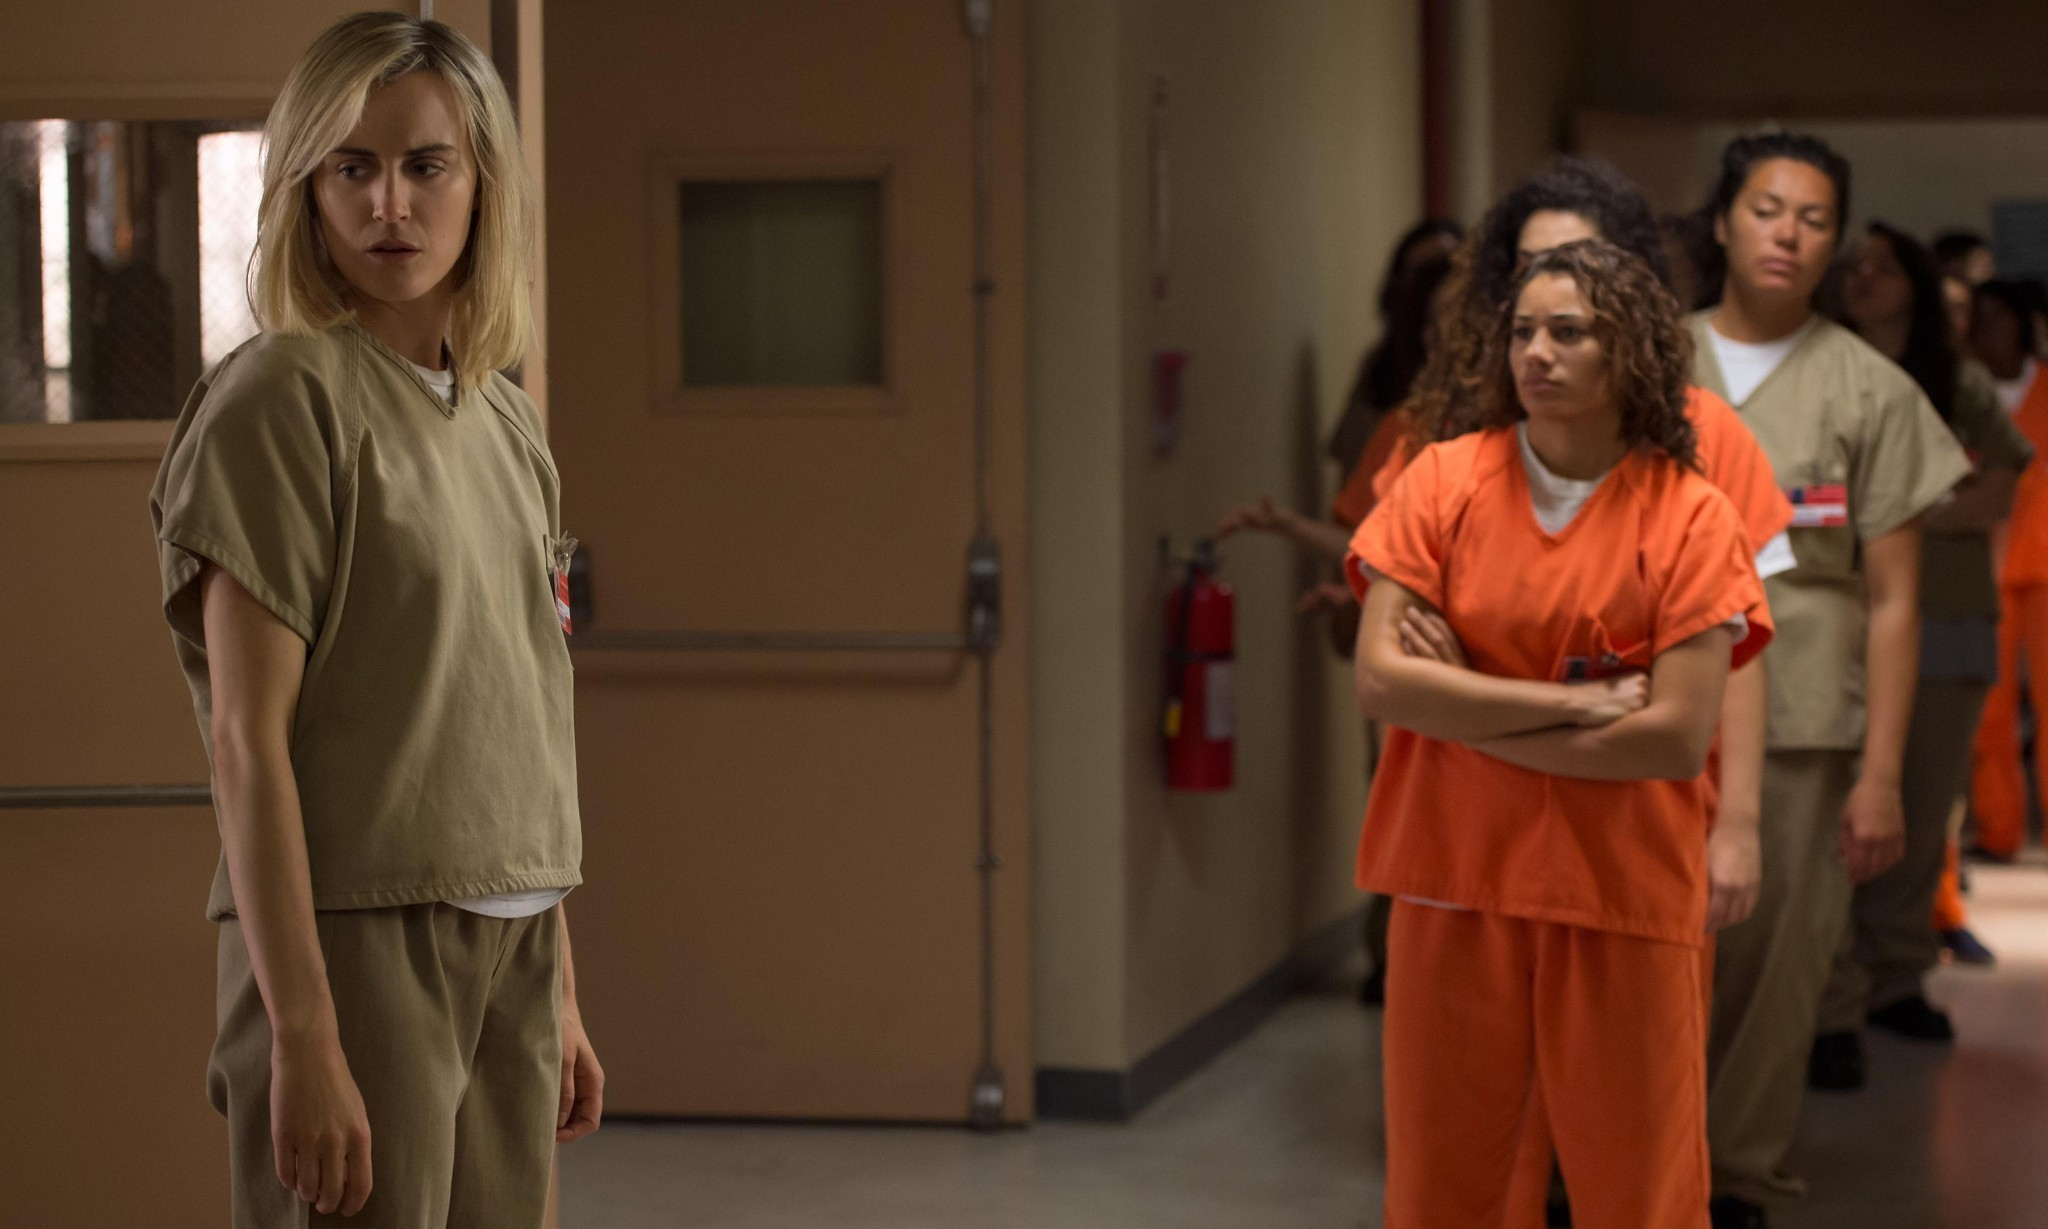 Netflix faces growing competition as new and old rivals step up their game